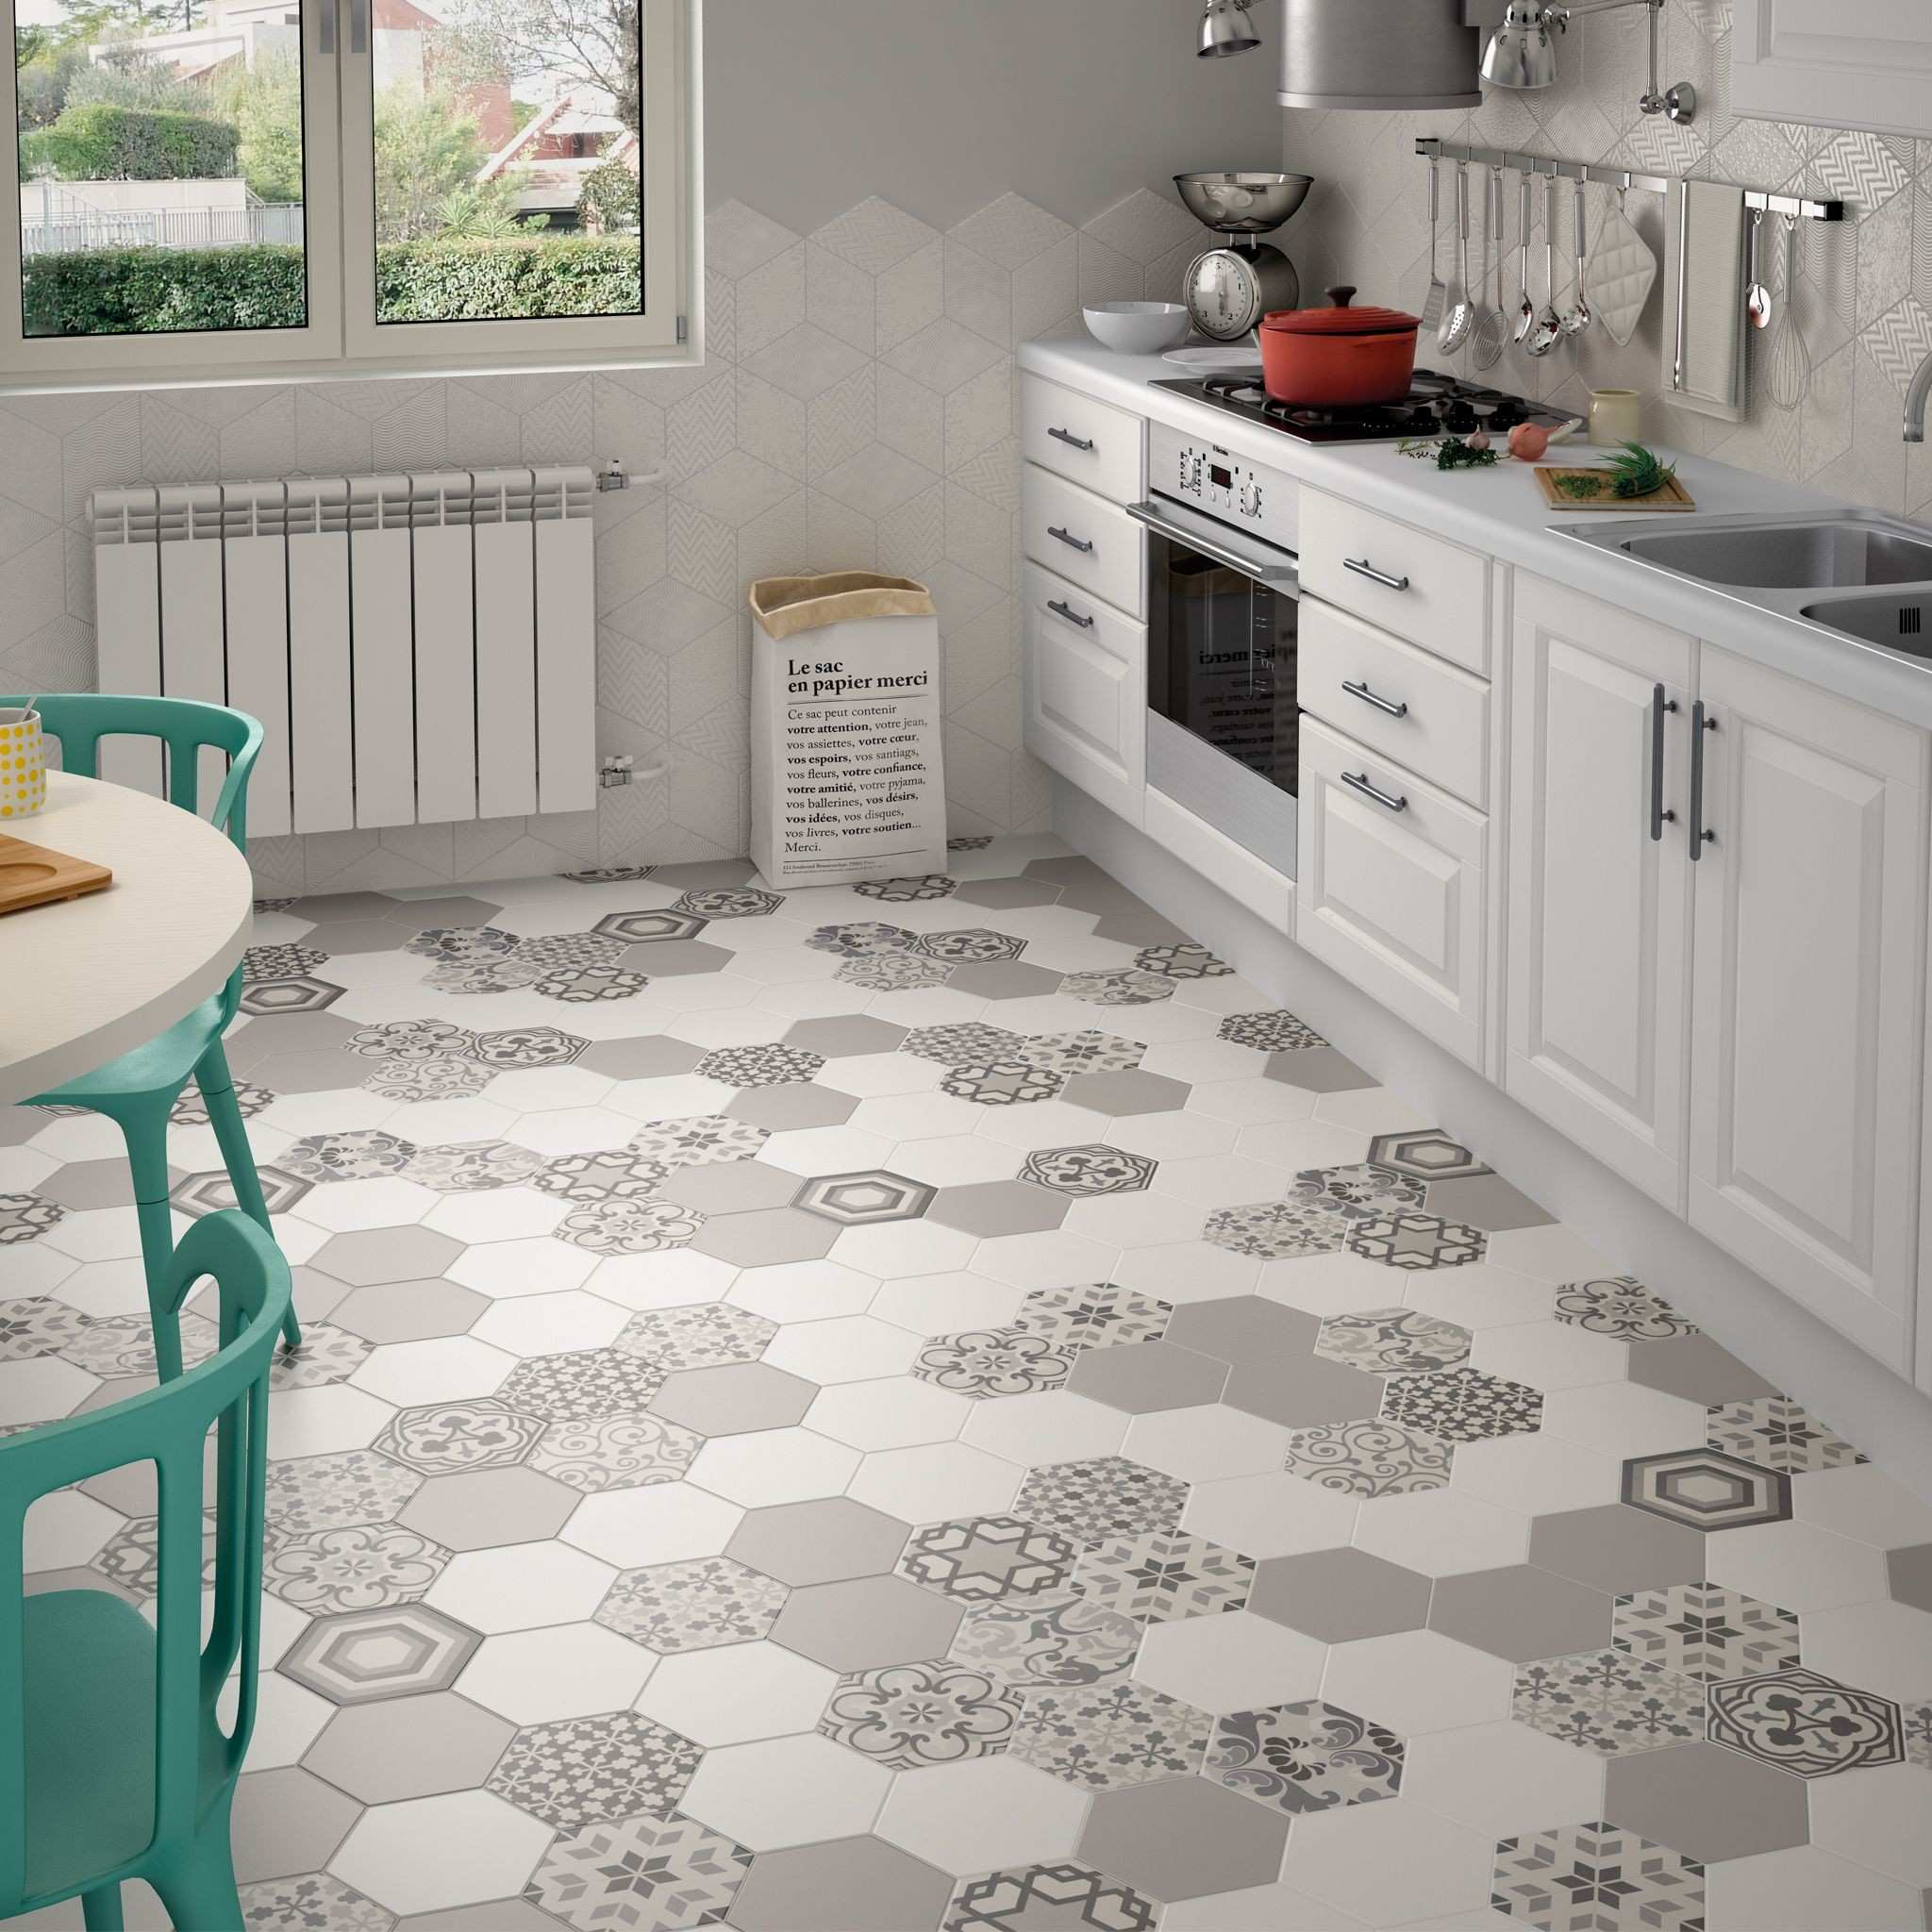 Hexagon Random Pattern Decorative tiles in Black & White colours for